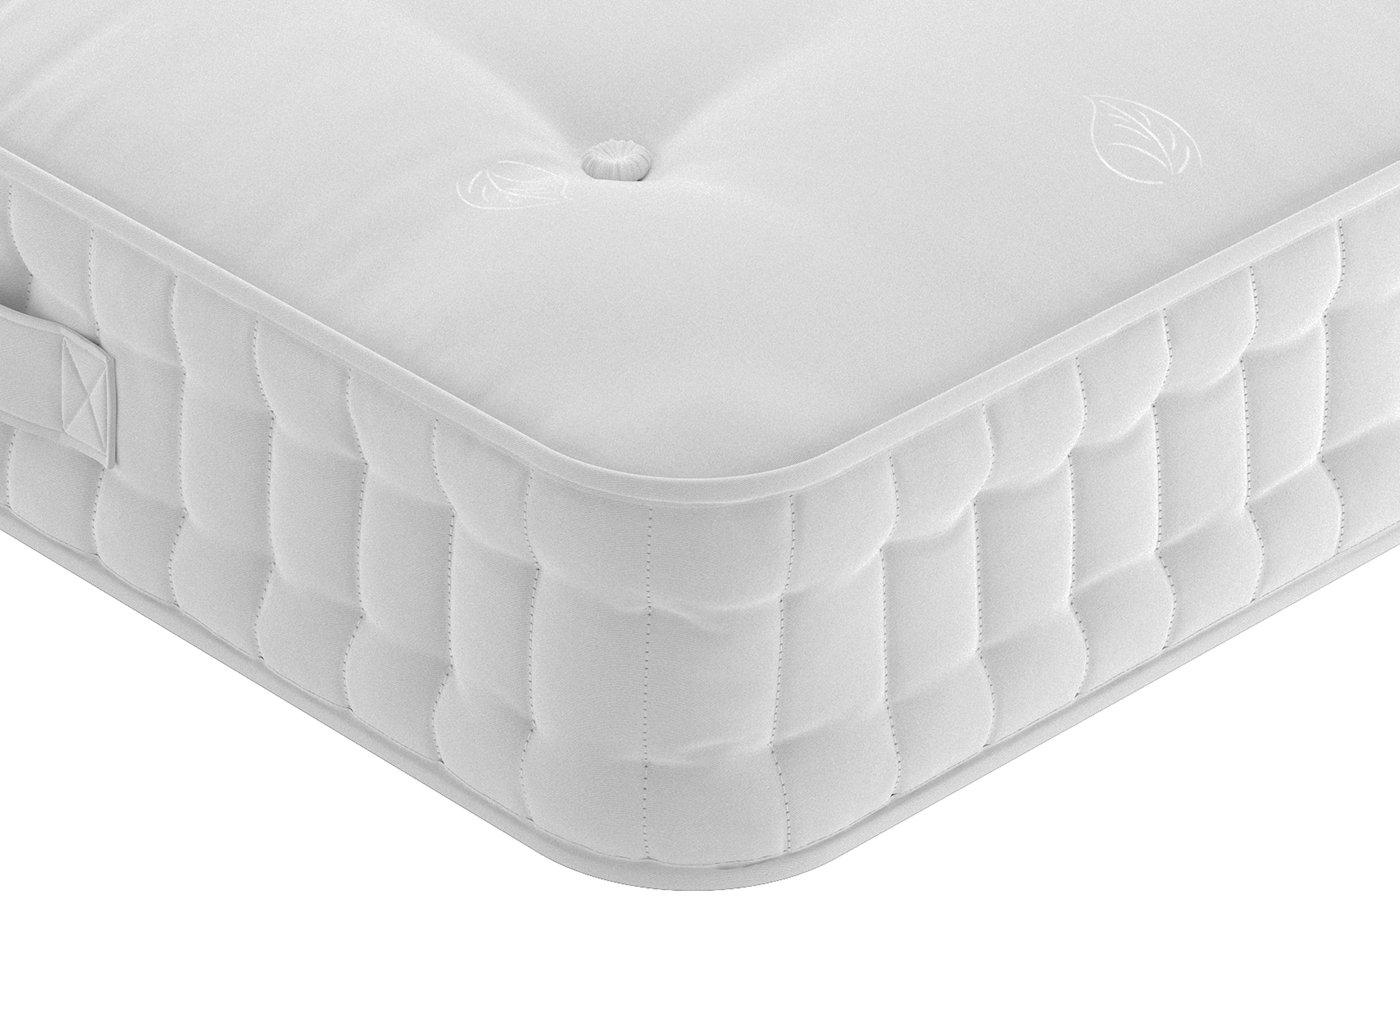 Flaxby Nature's Halo Pocket Sprung Mattress (£849)